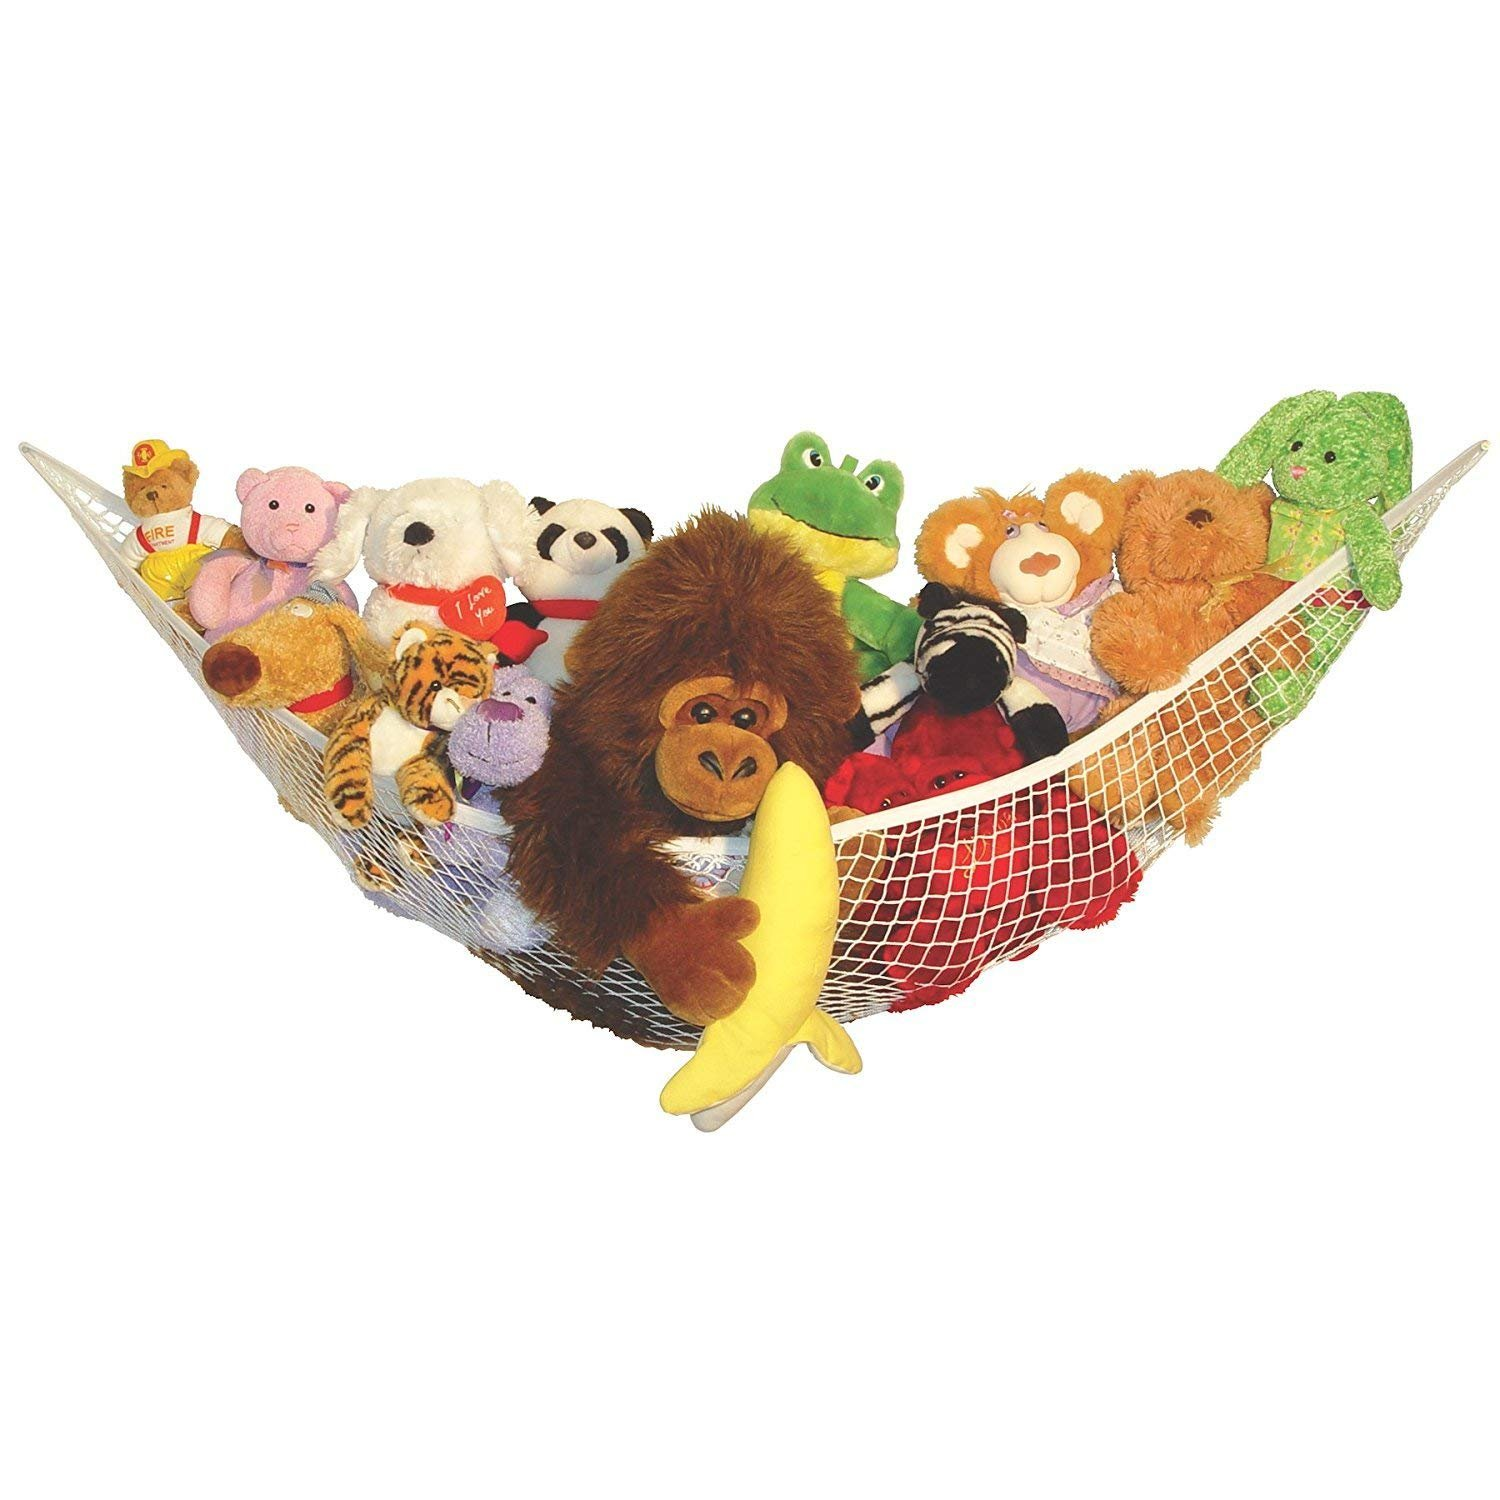 DD GOODS Toy Hammock White Plush Toy Storage Room Animals And Toy Organizer Storage Net Is Durable, Easy To Install